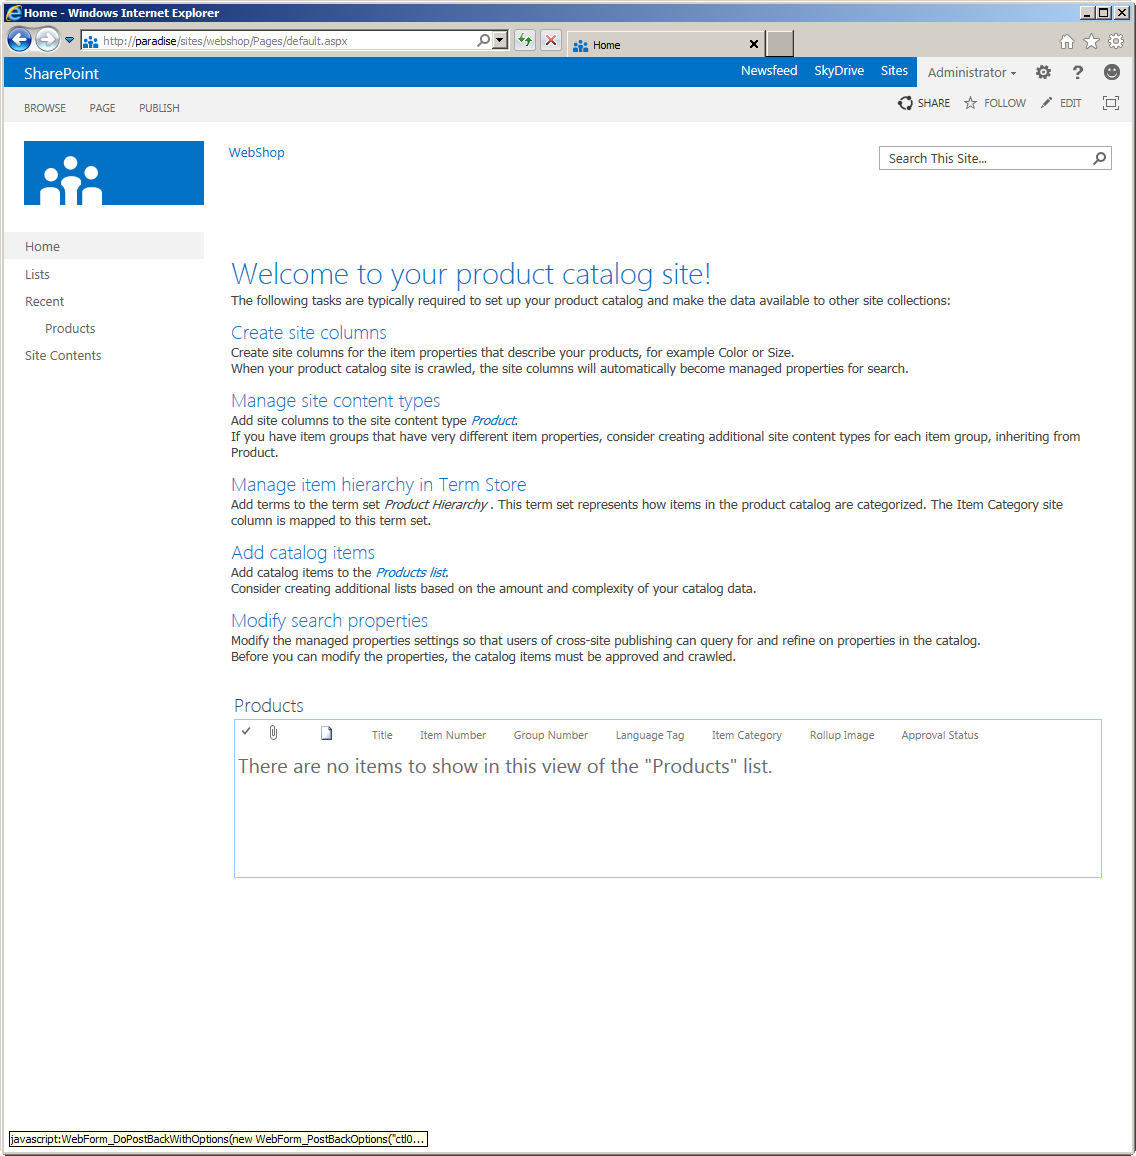 sharepoint 2013 product catalog site template - sharepoint 2013 preview product catalog site template